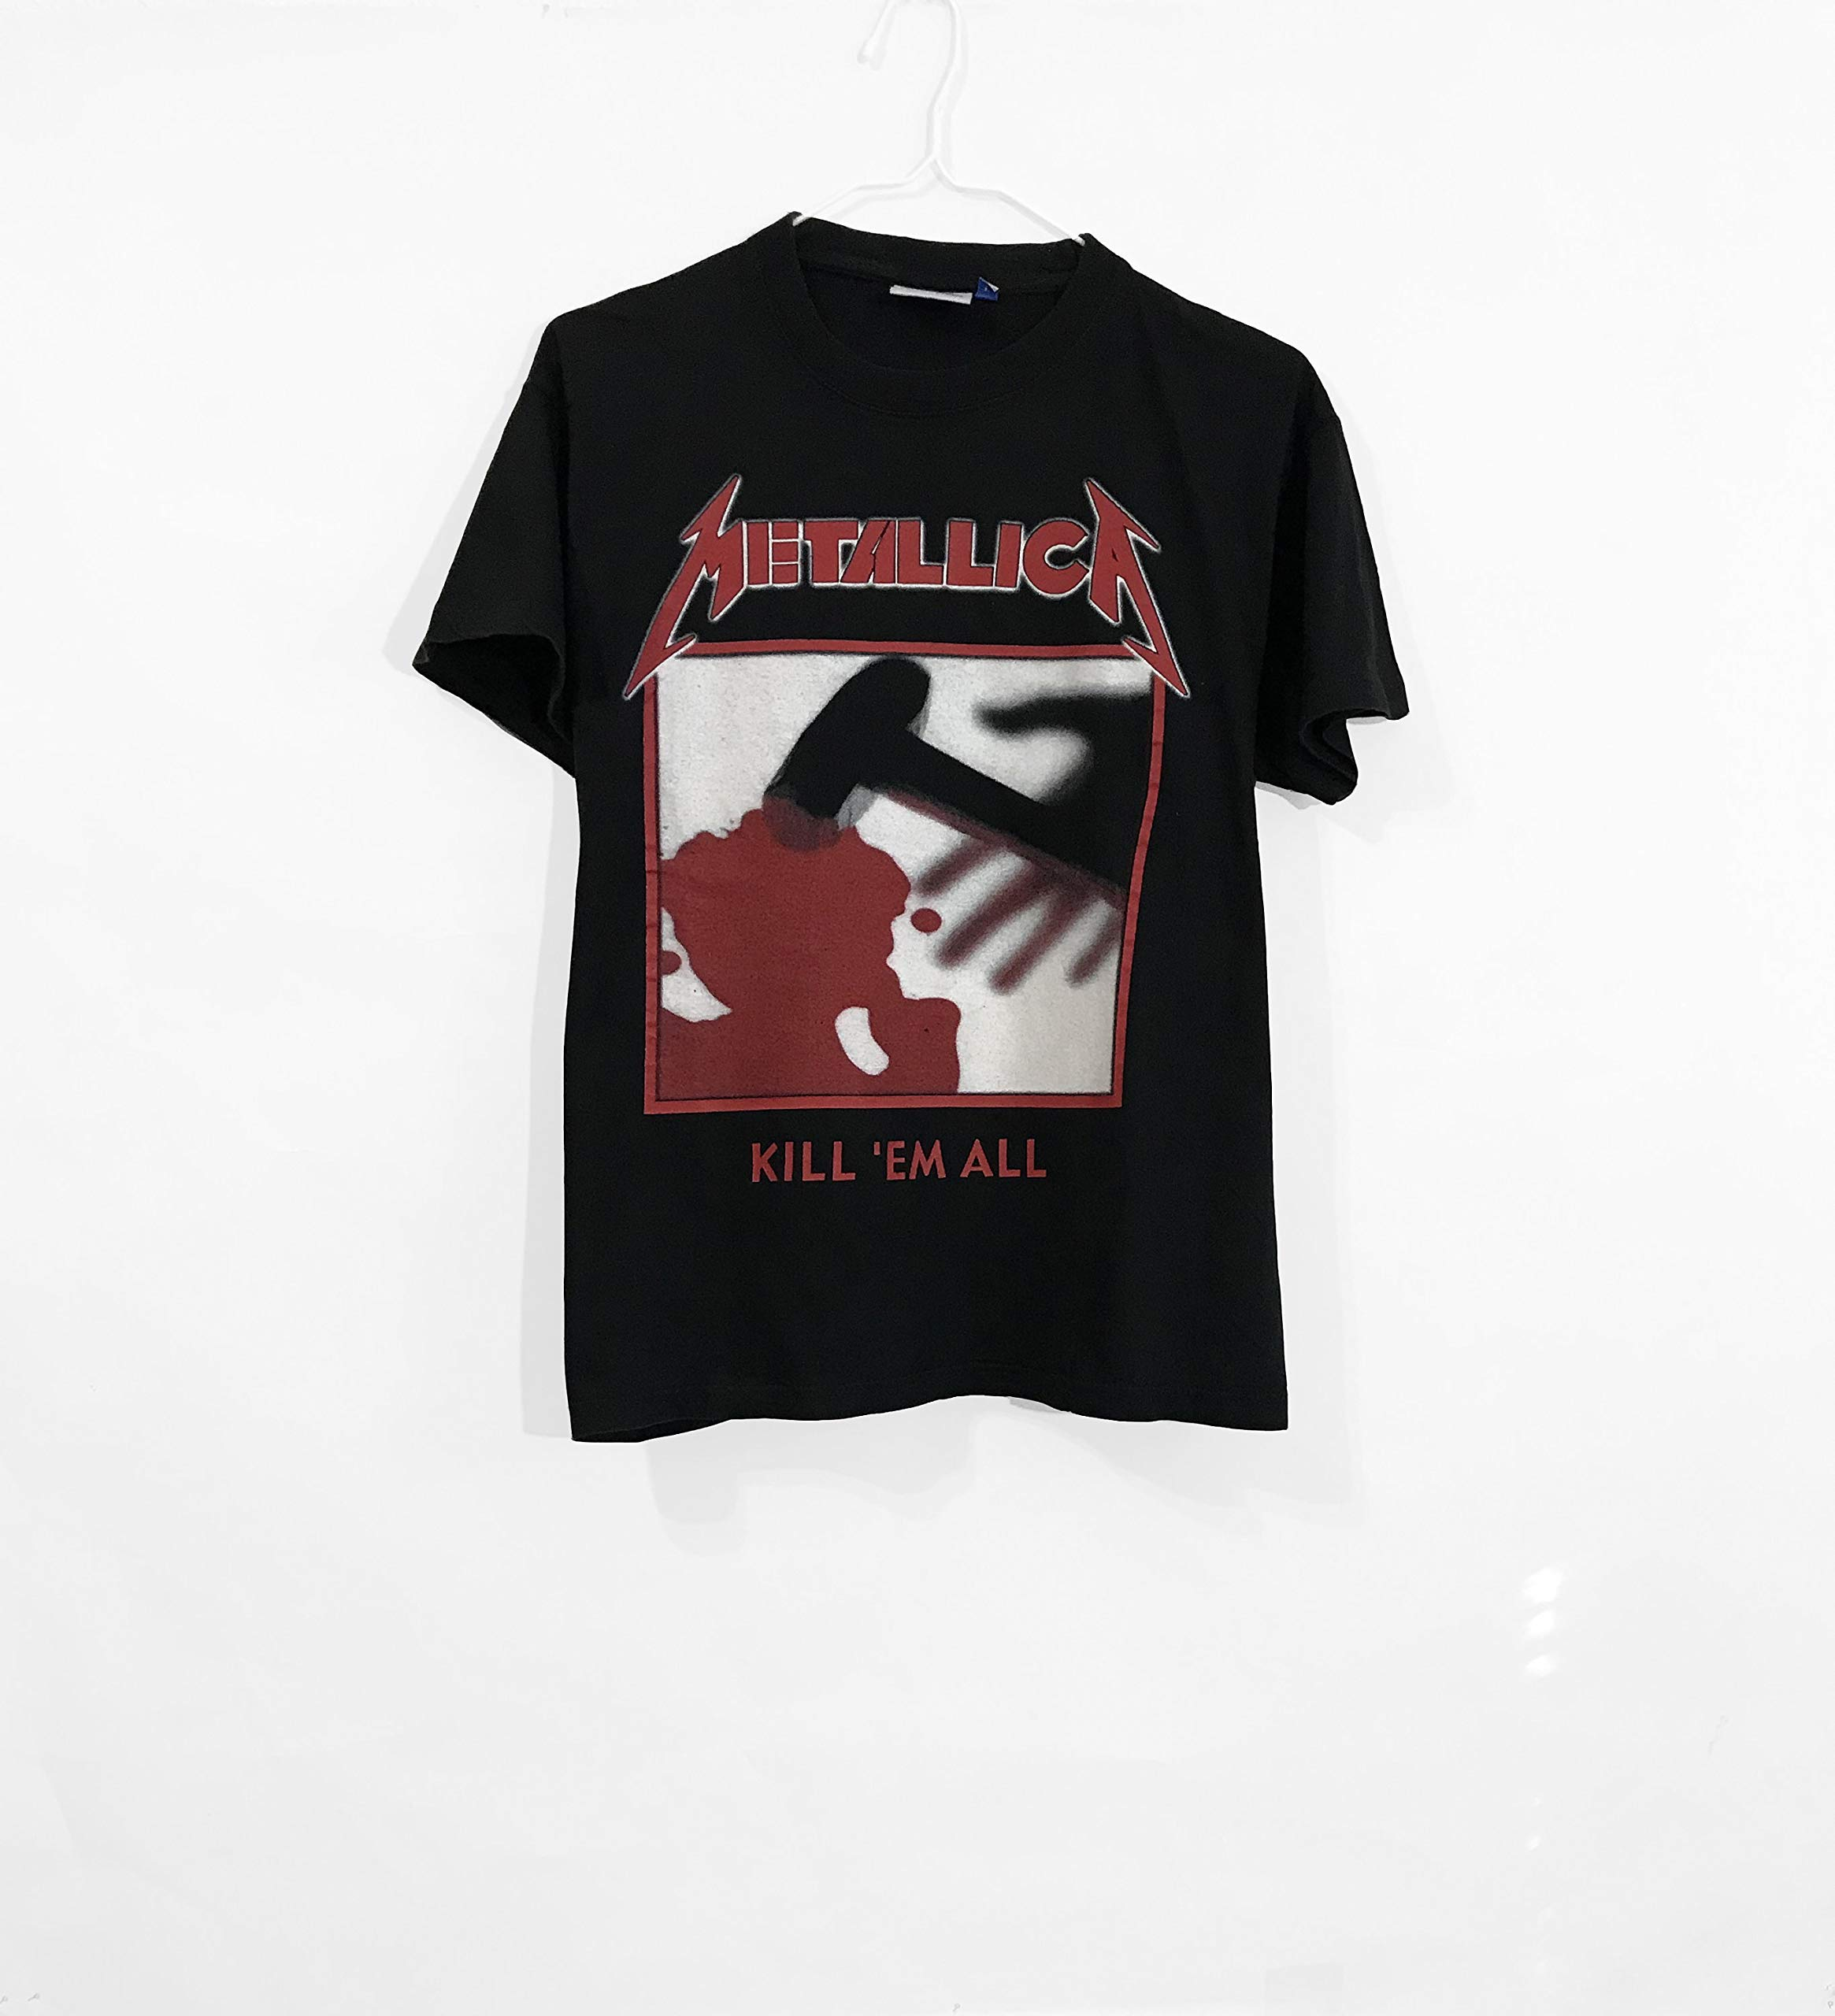 METALLICA RIDE THE LIGHTNING ELECTRIC CHAIR BLACK T-SHIRT NEW OFFICIAL MERCH